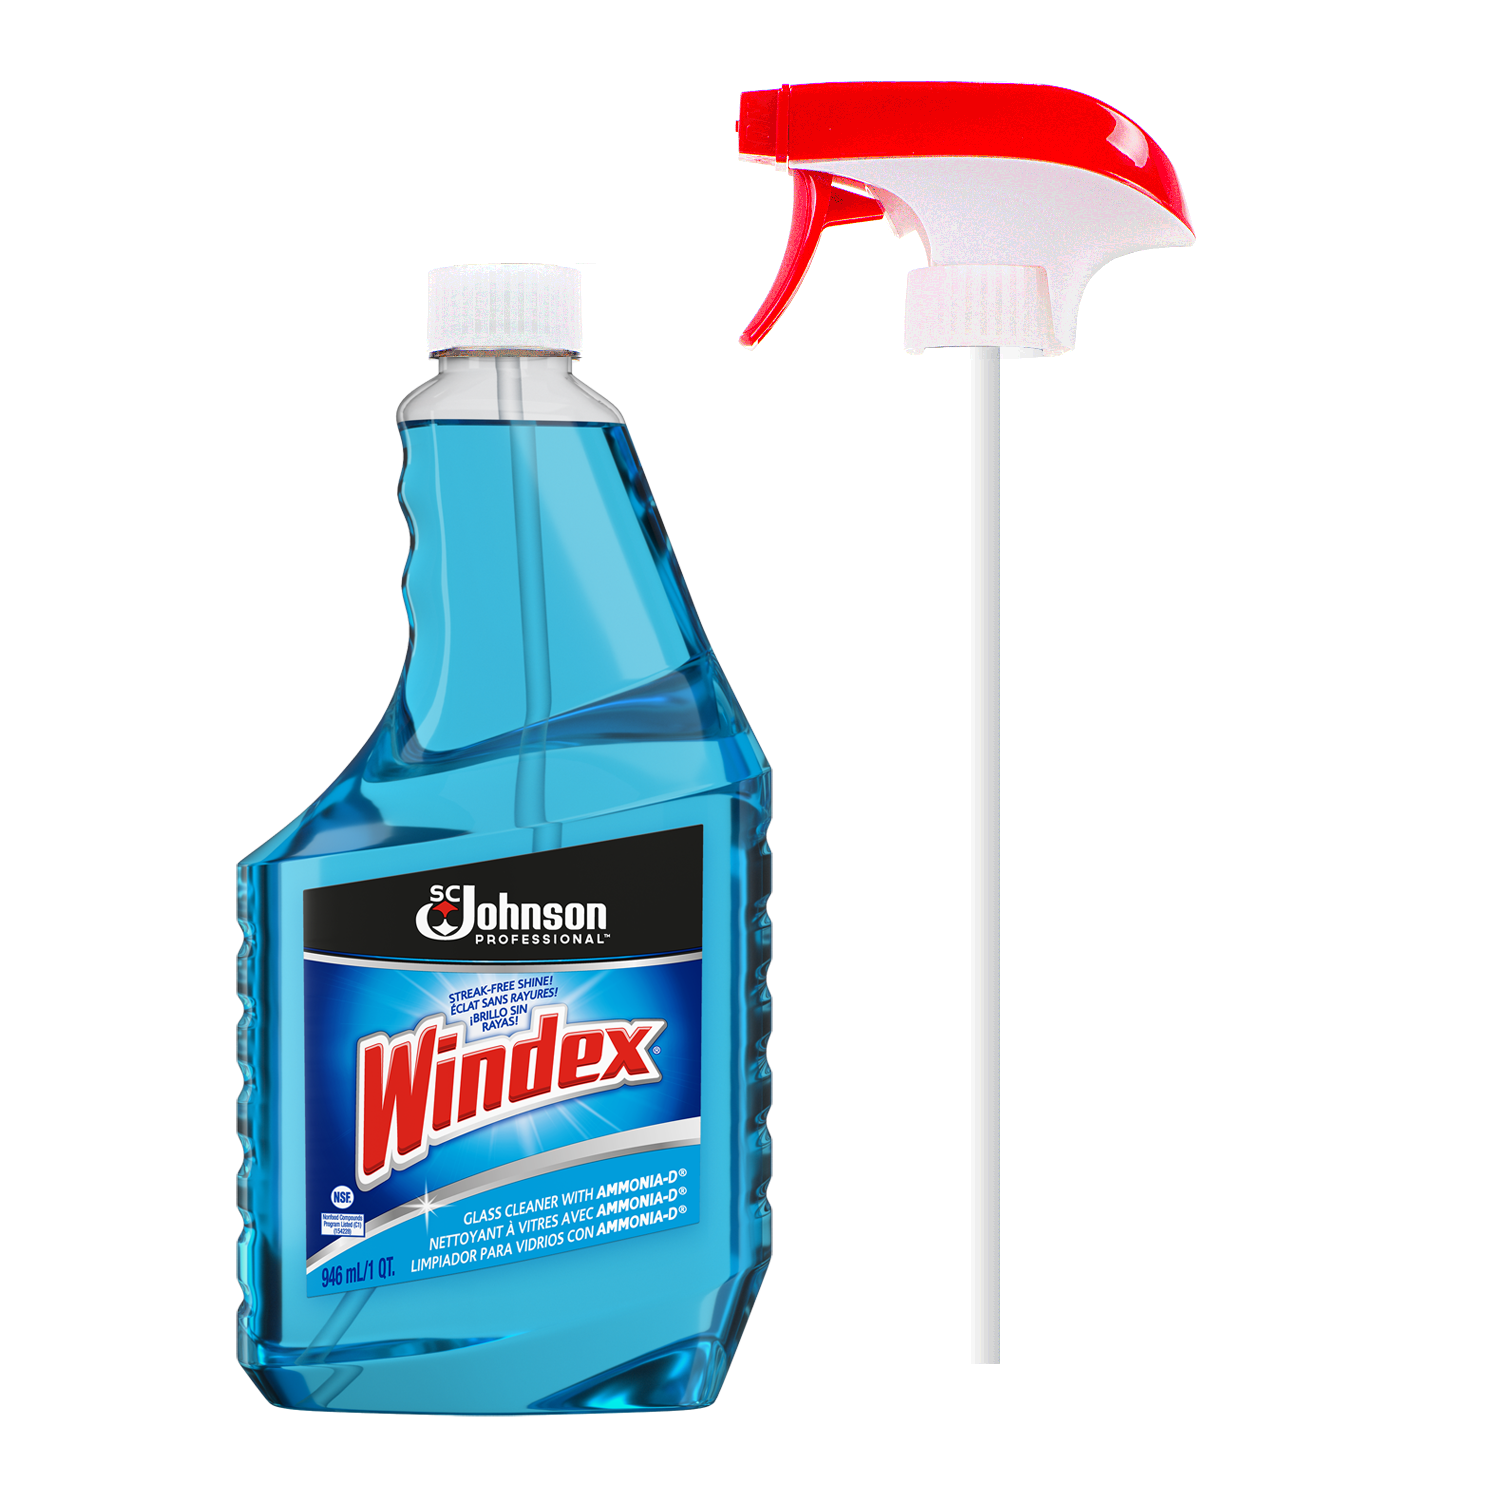 SCJP Windex Products